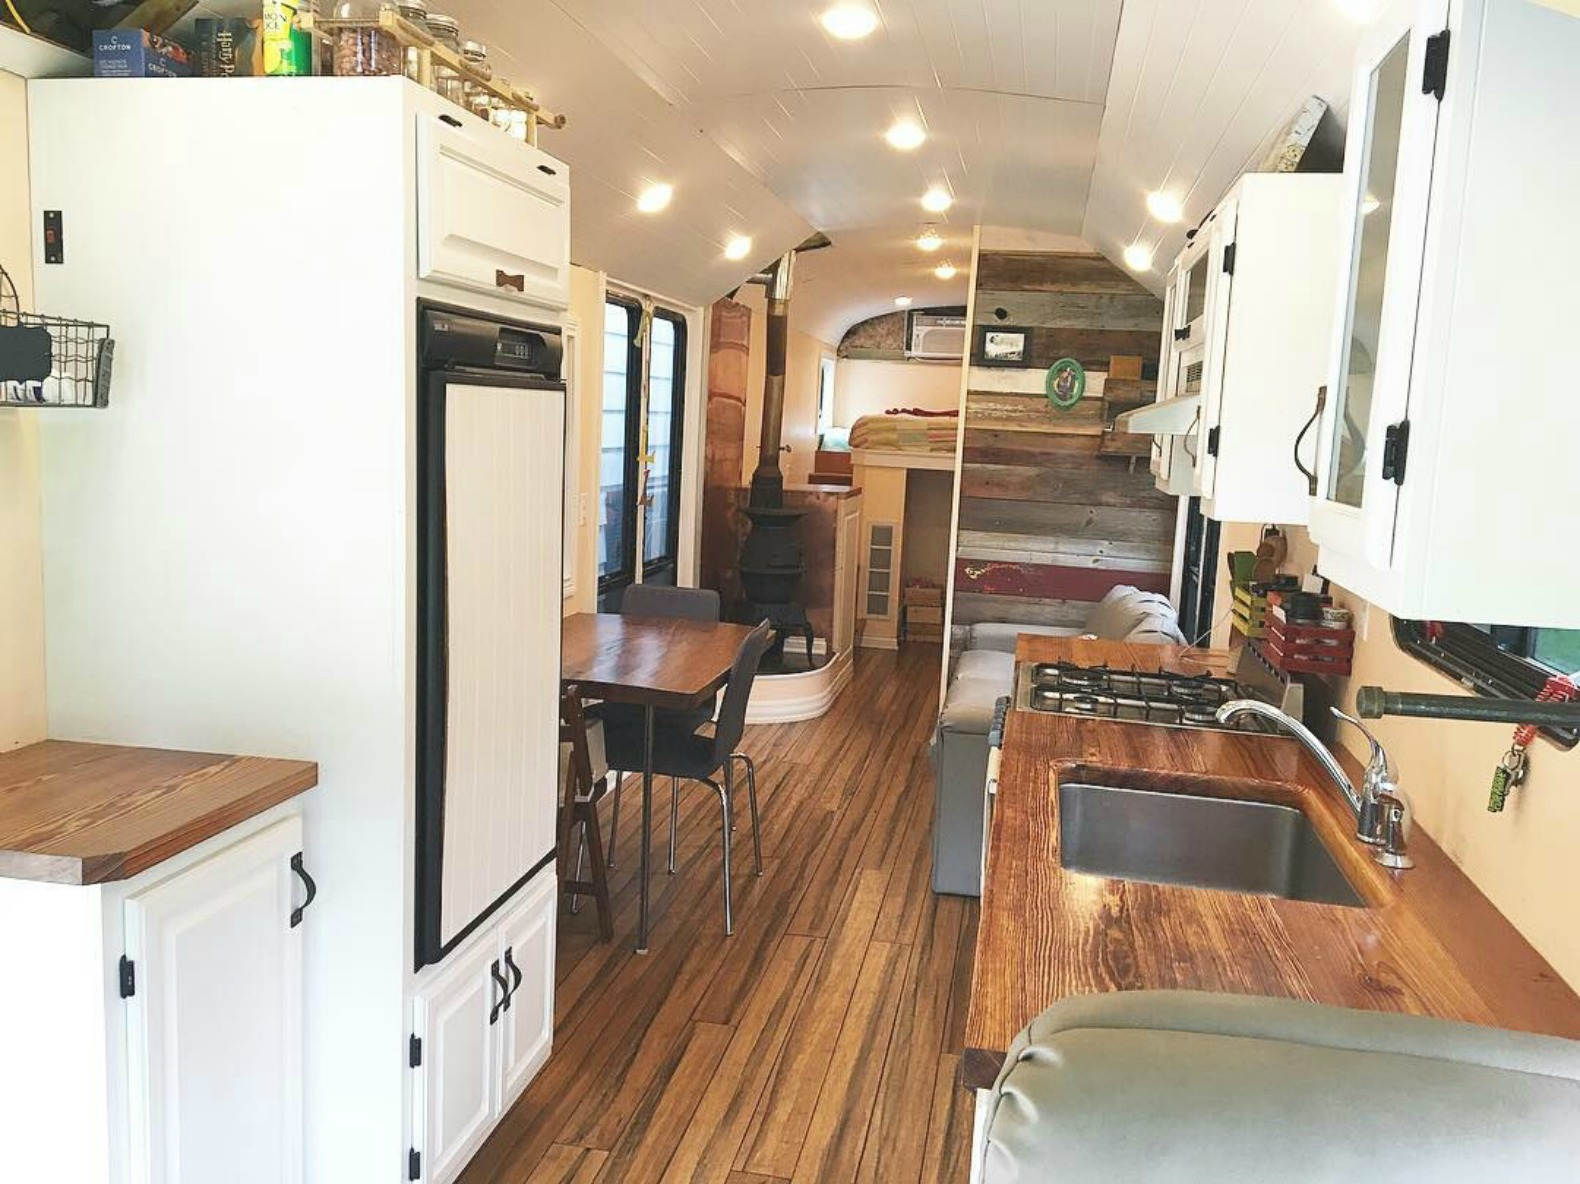 Tiny Home Designs: This Off-grid School Bus Home Has An Incredible Raised Roof